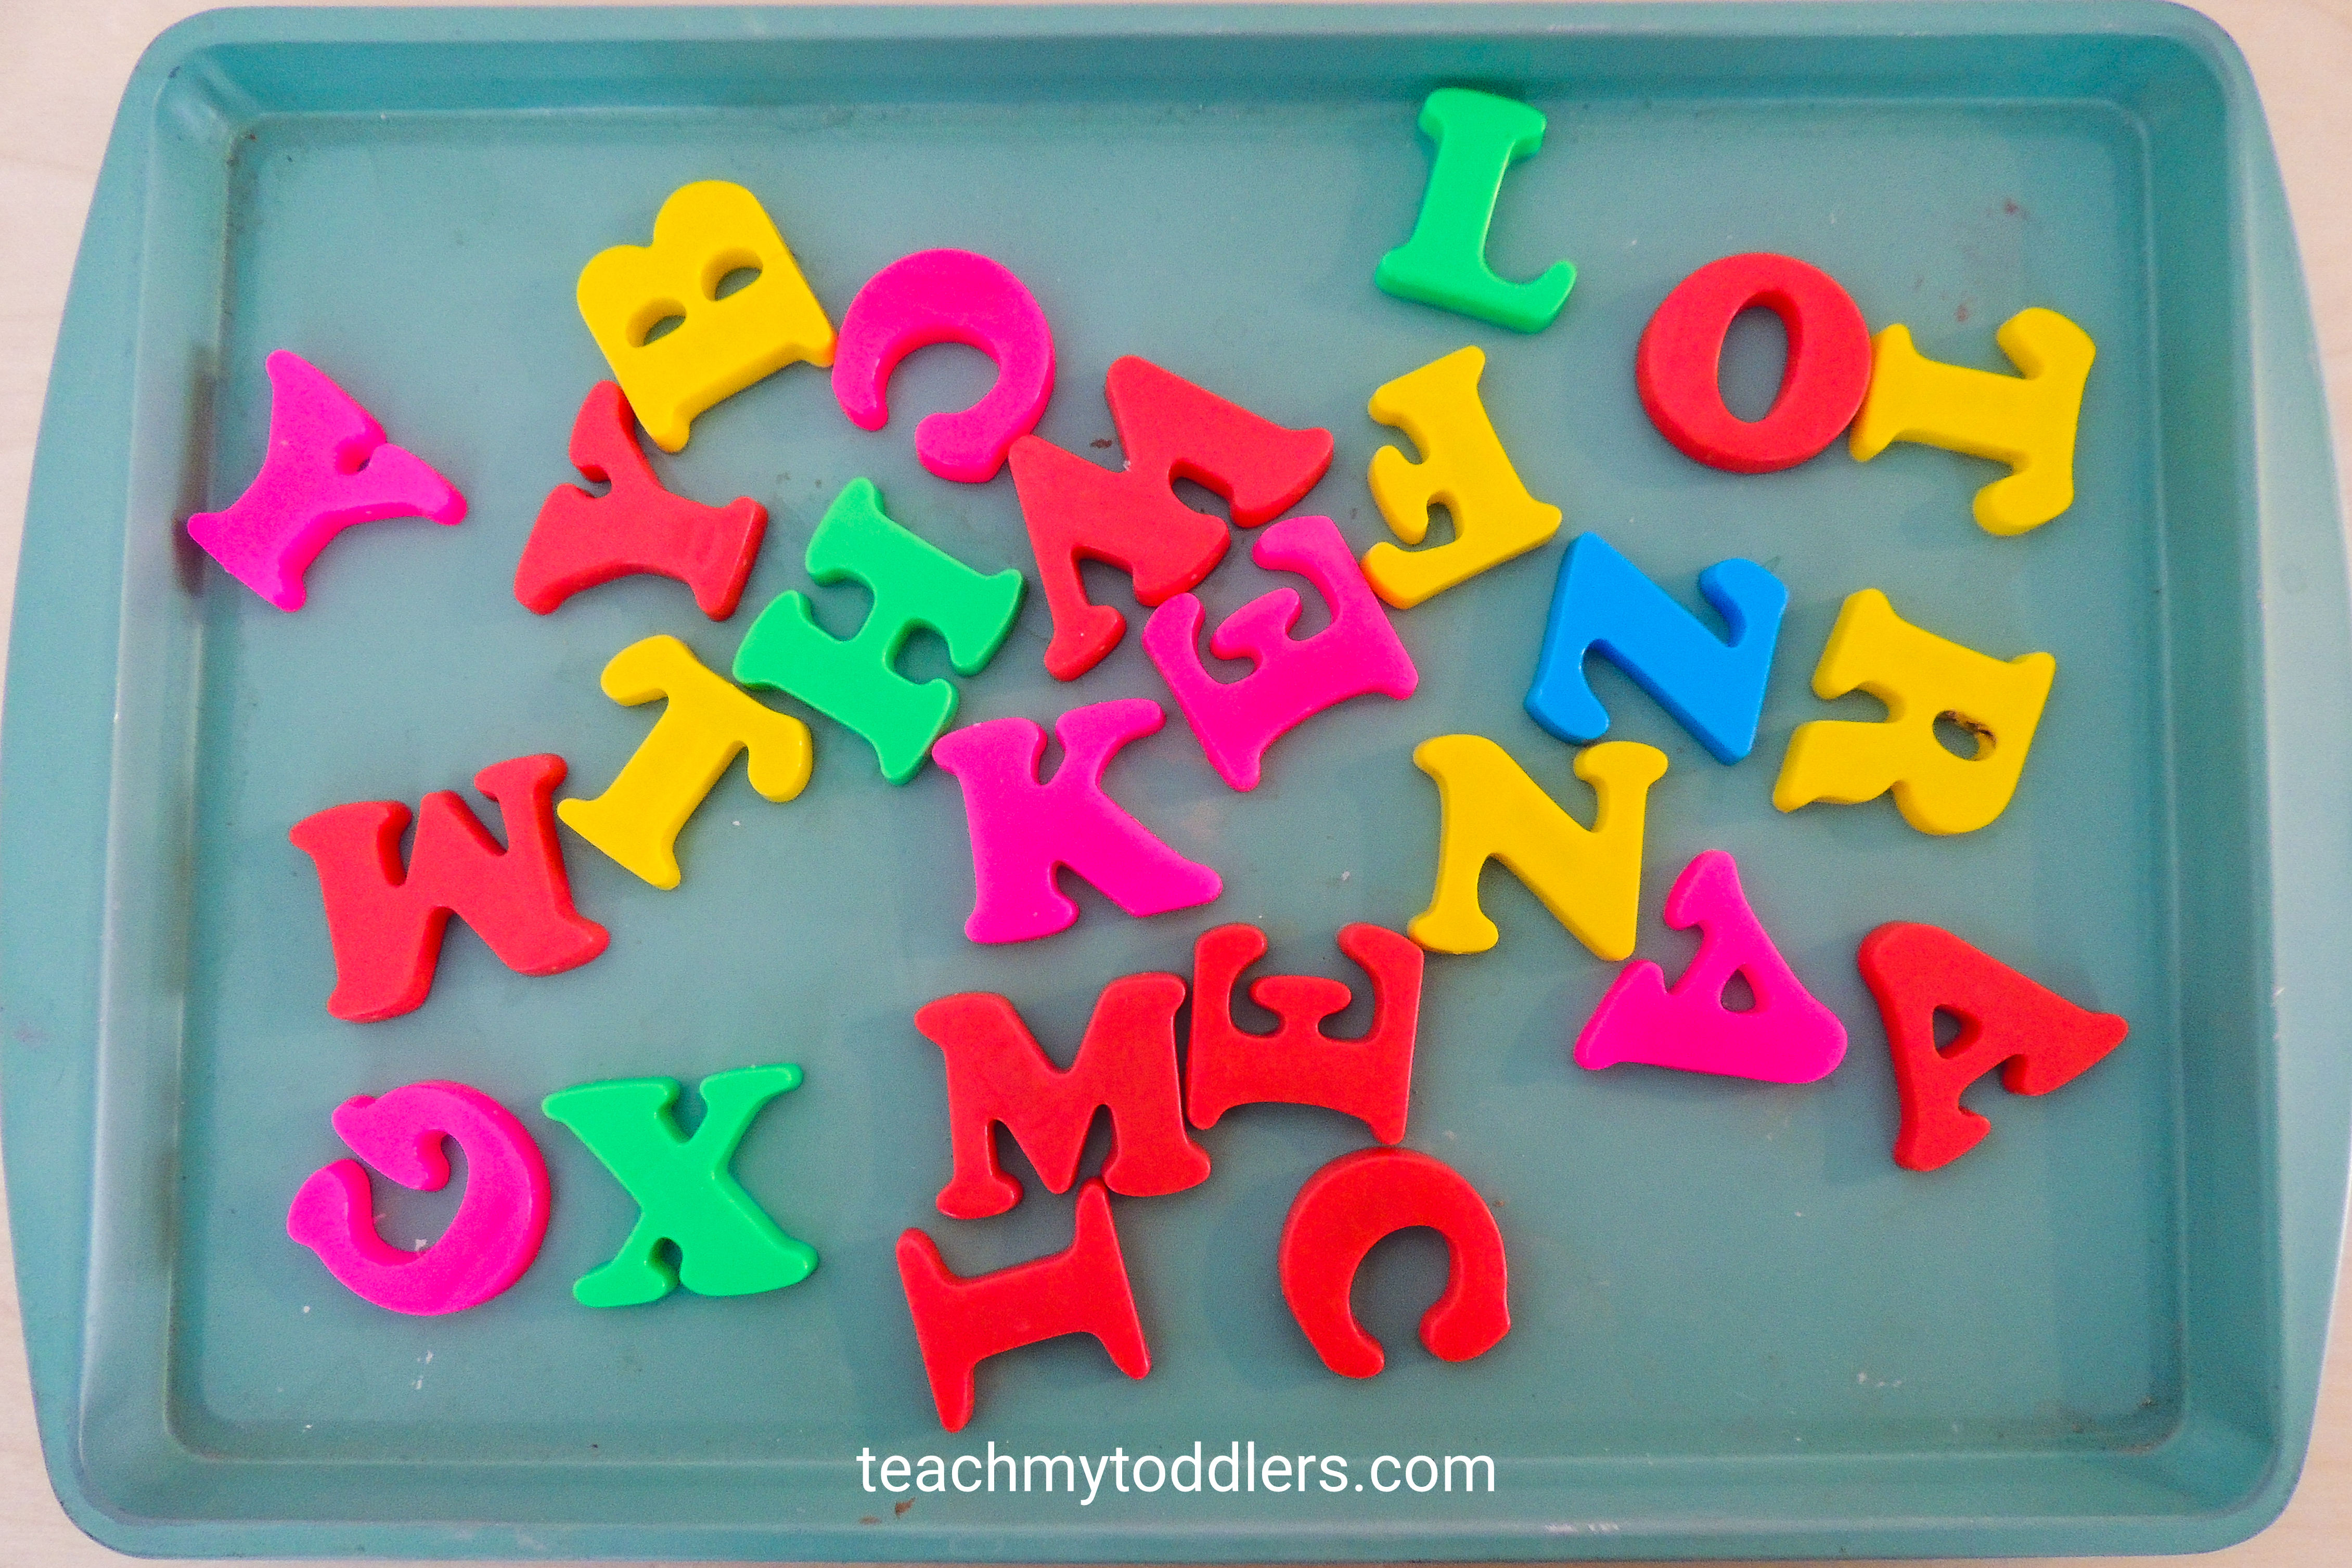 Find out how to use this magnetic match game to teach your toddlers letters